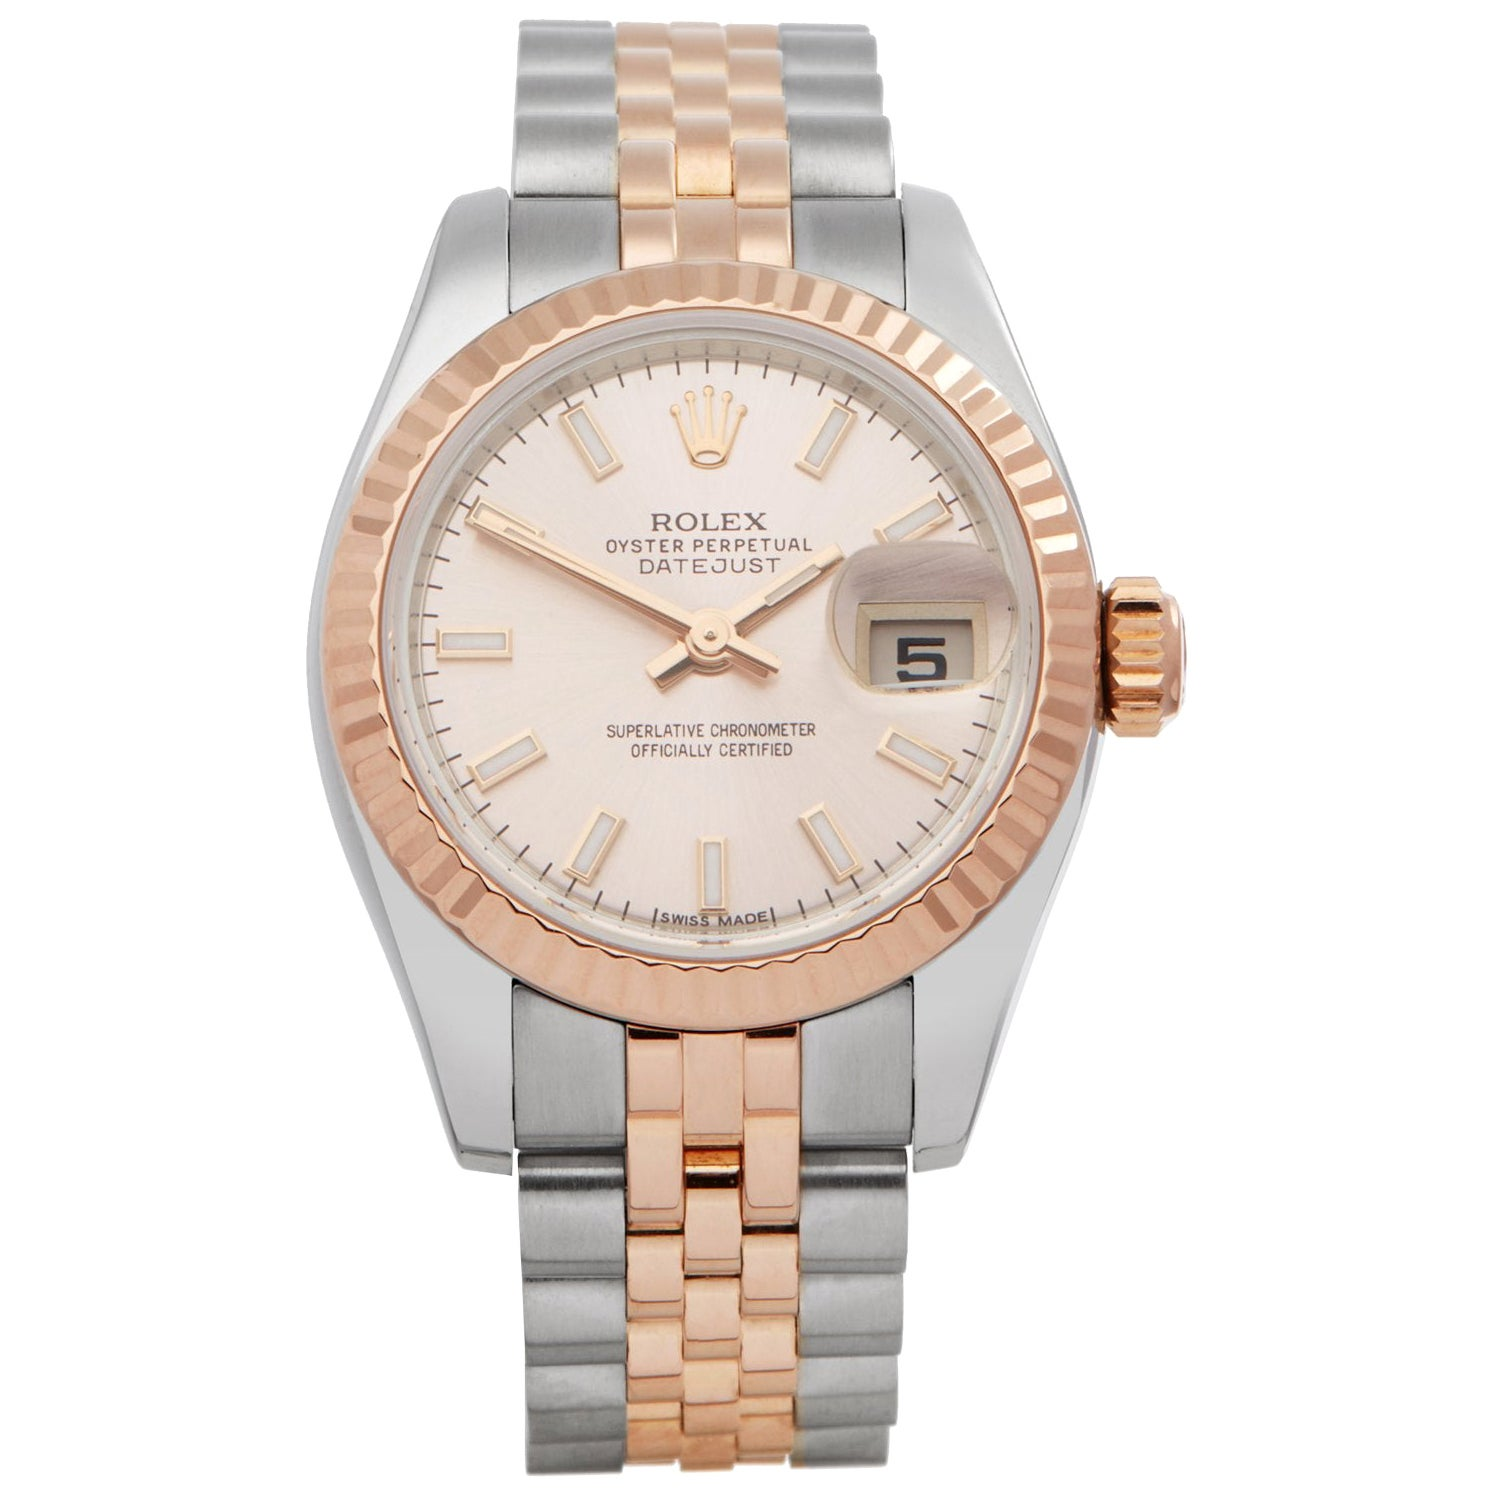 Rolex Datejust 26 179171 Ladies Stainless Steel and Rose Gold Watch